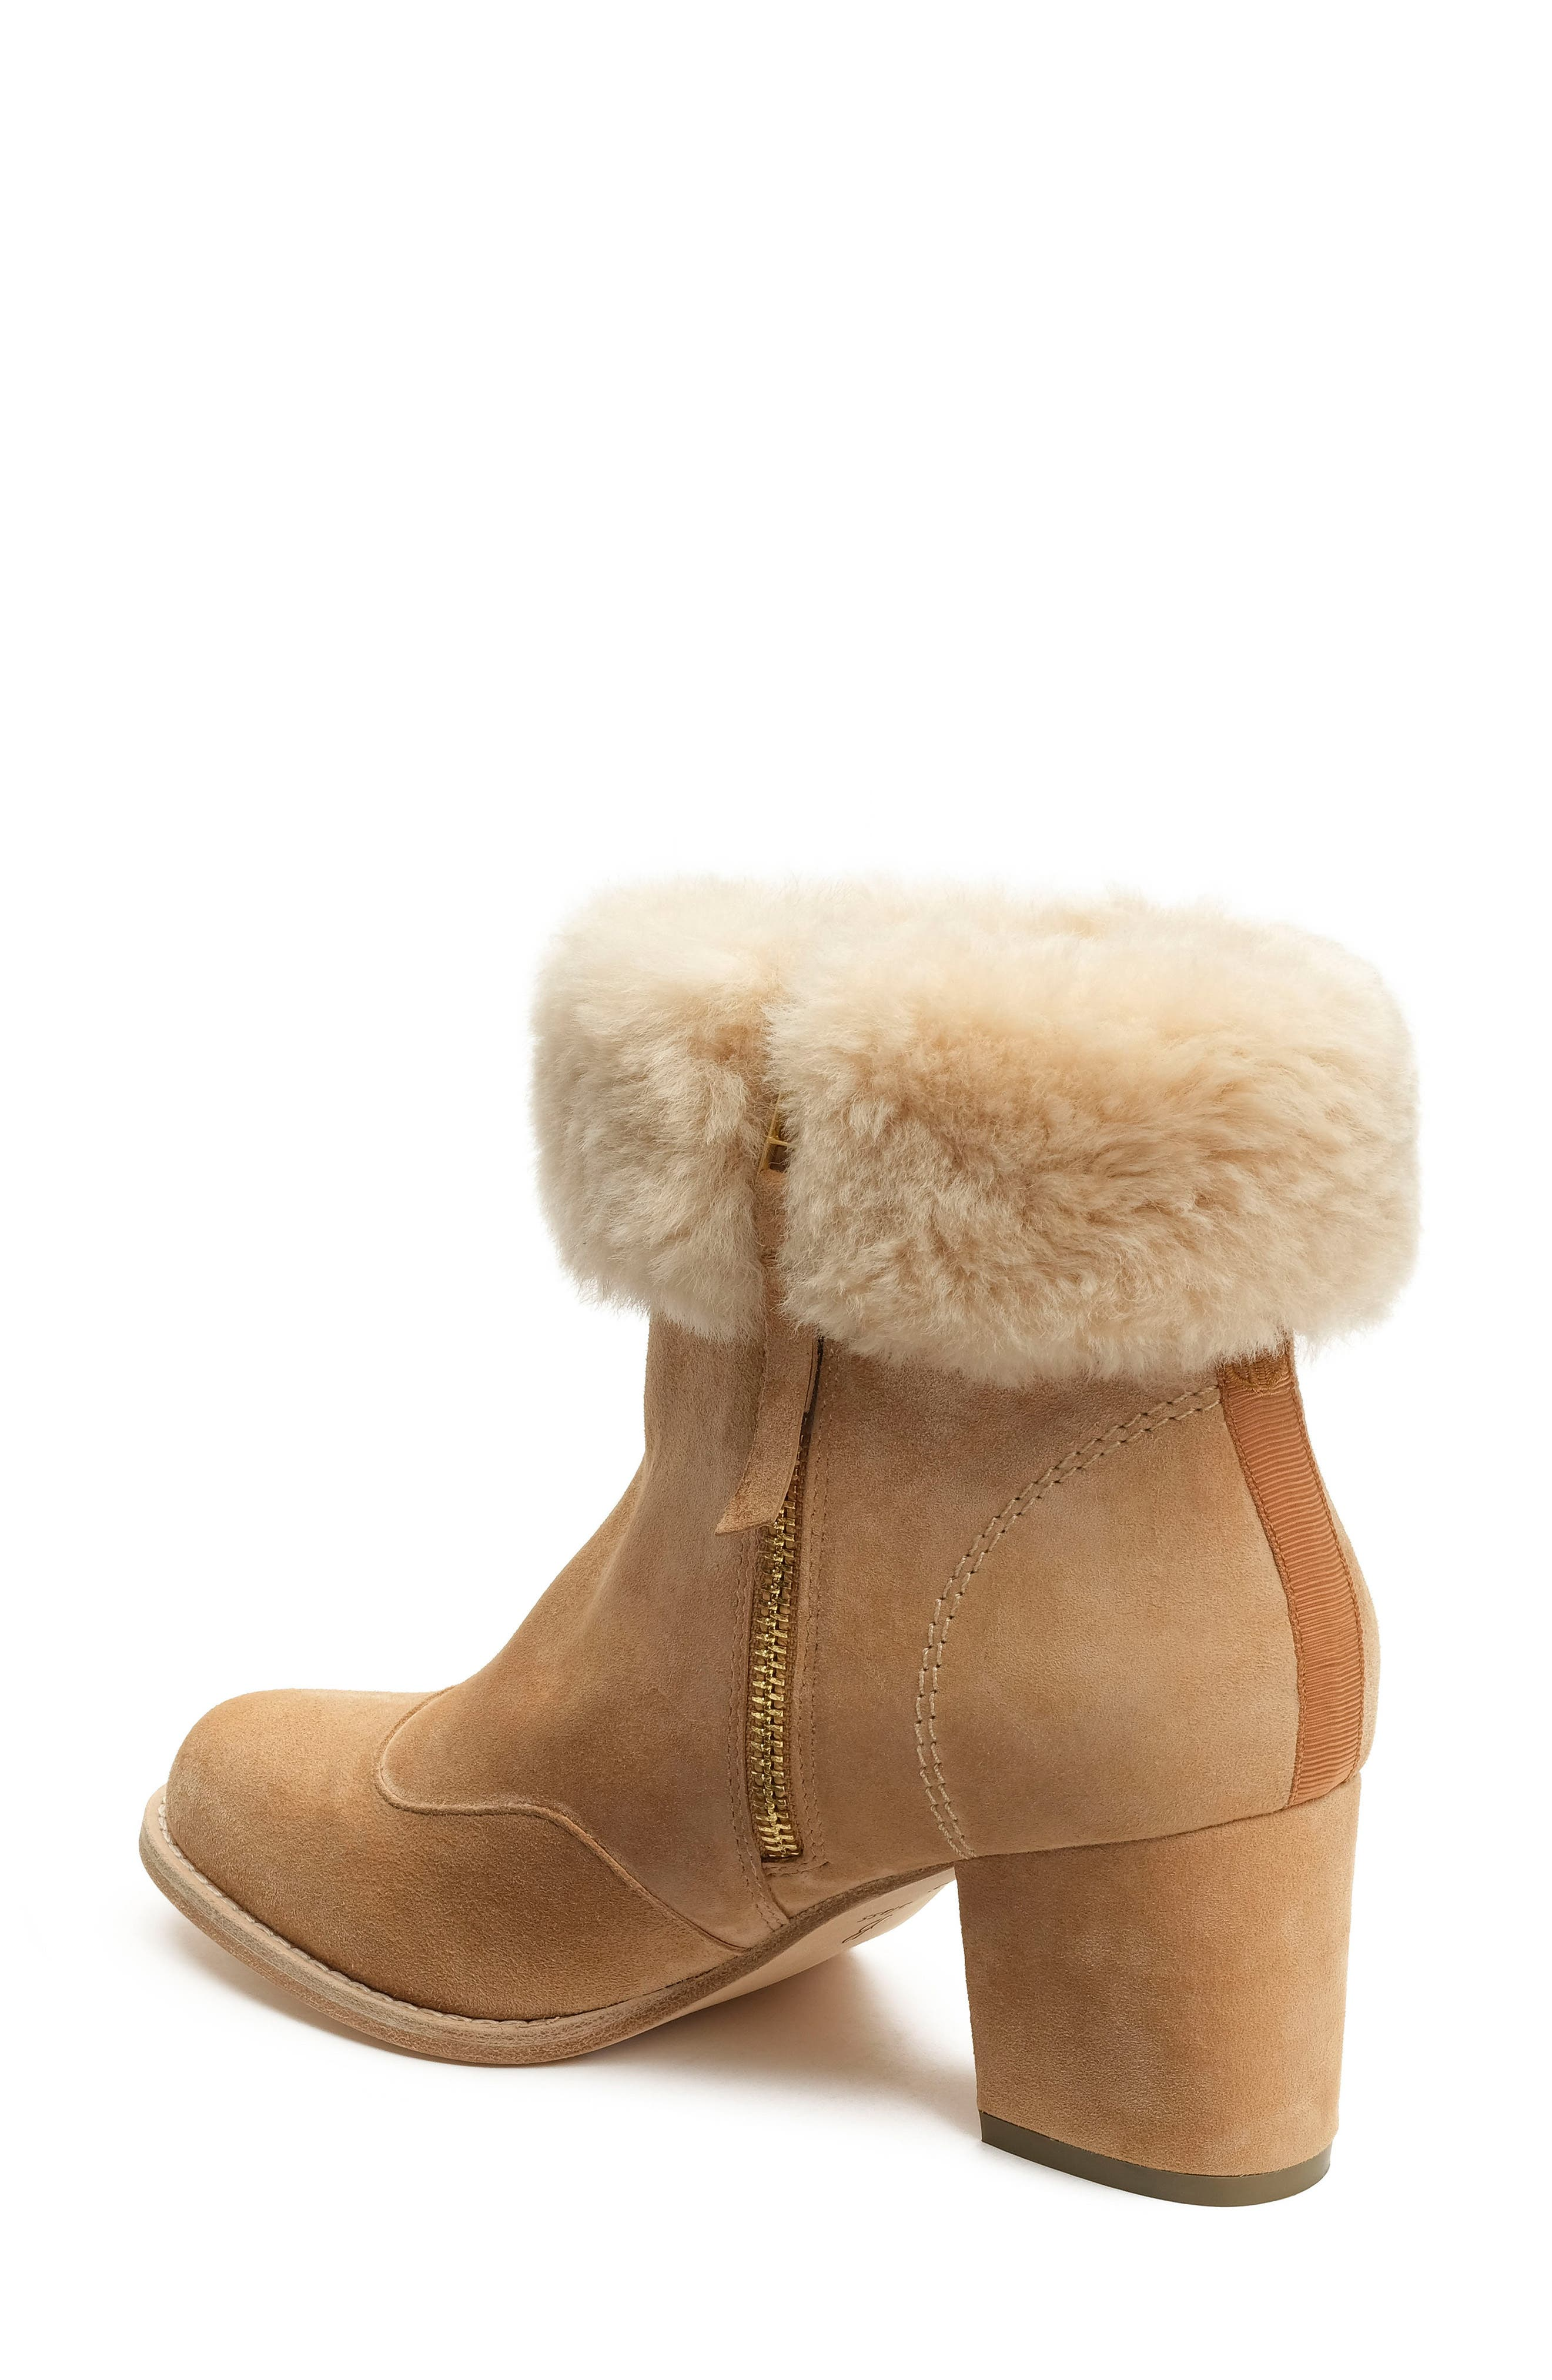 Genuine Shearling Bootie,                             Alternate thumbnail 2, color,